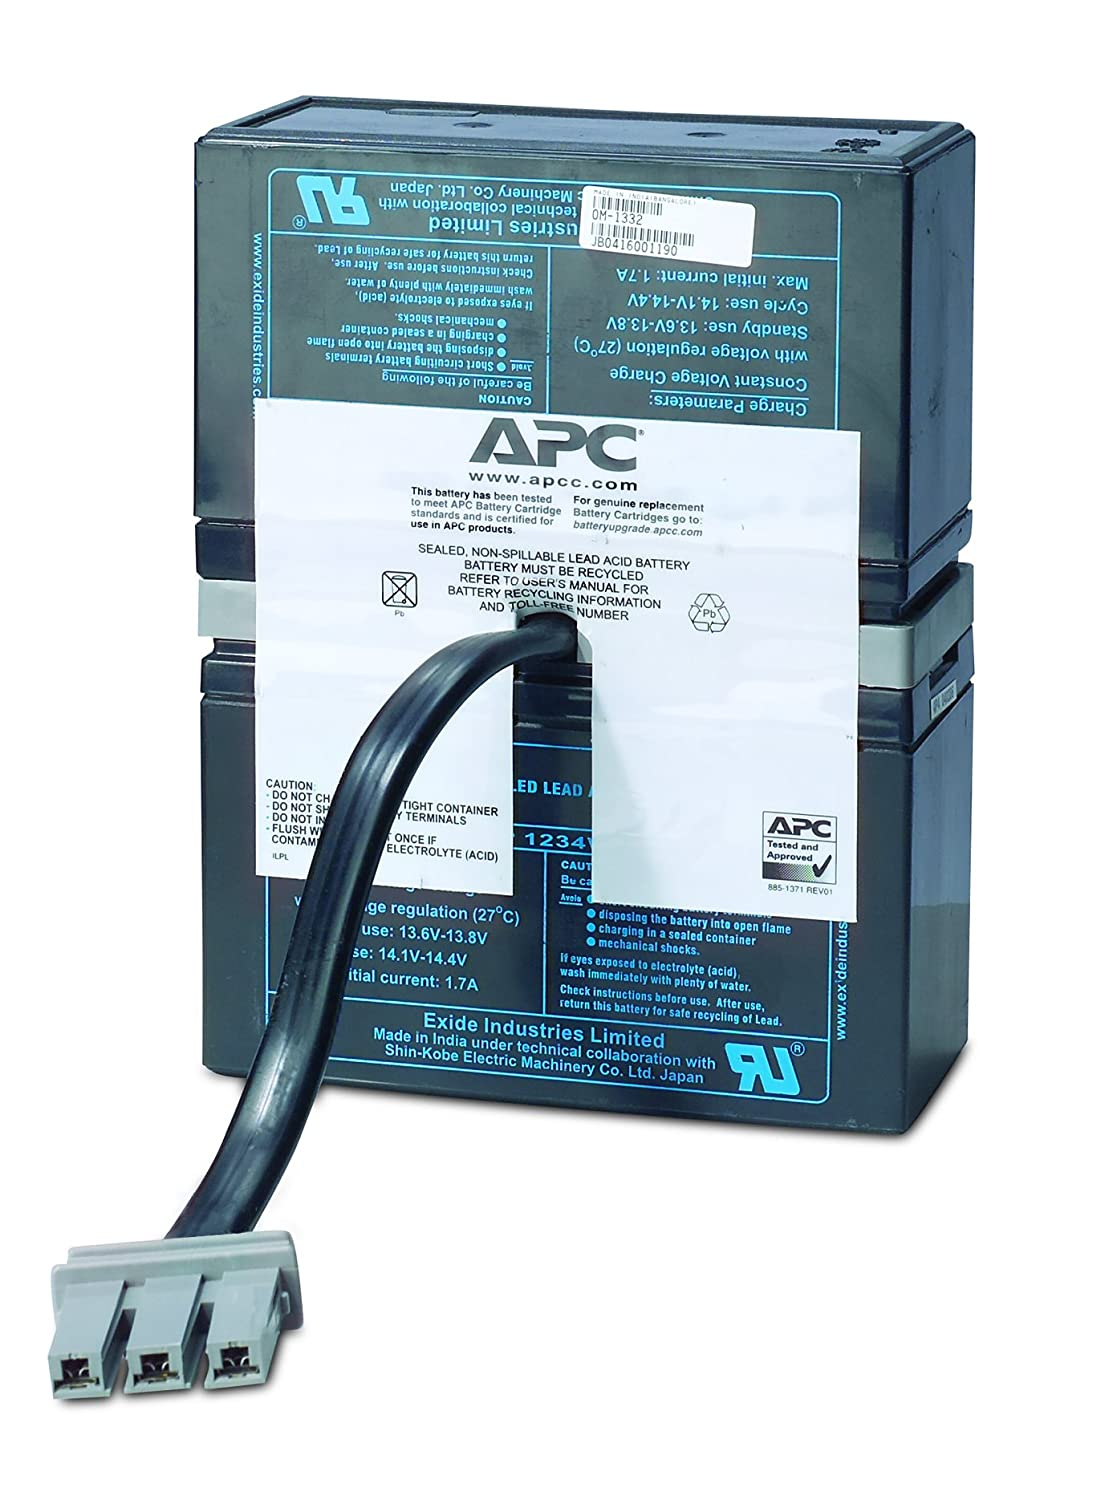 Apc Rbc17 Ups Replacement Battery Cartridge For Be700g Wiring Diagram Bk650ei And Select Others Computers Accessories